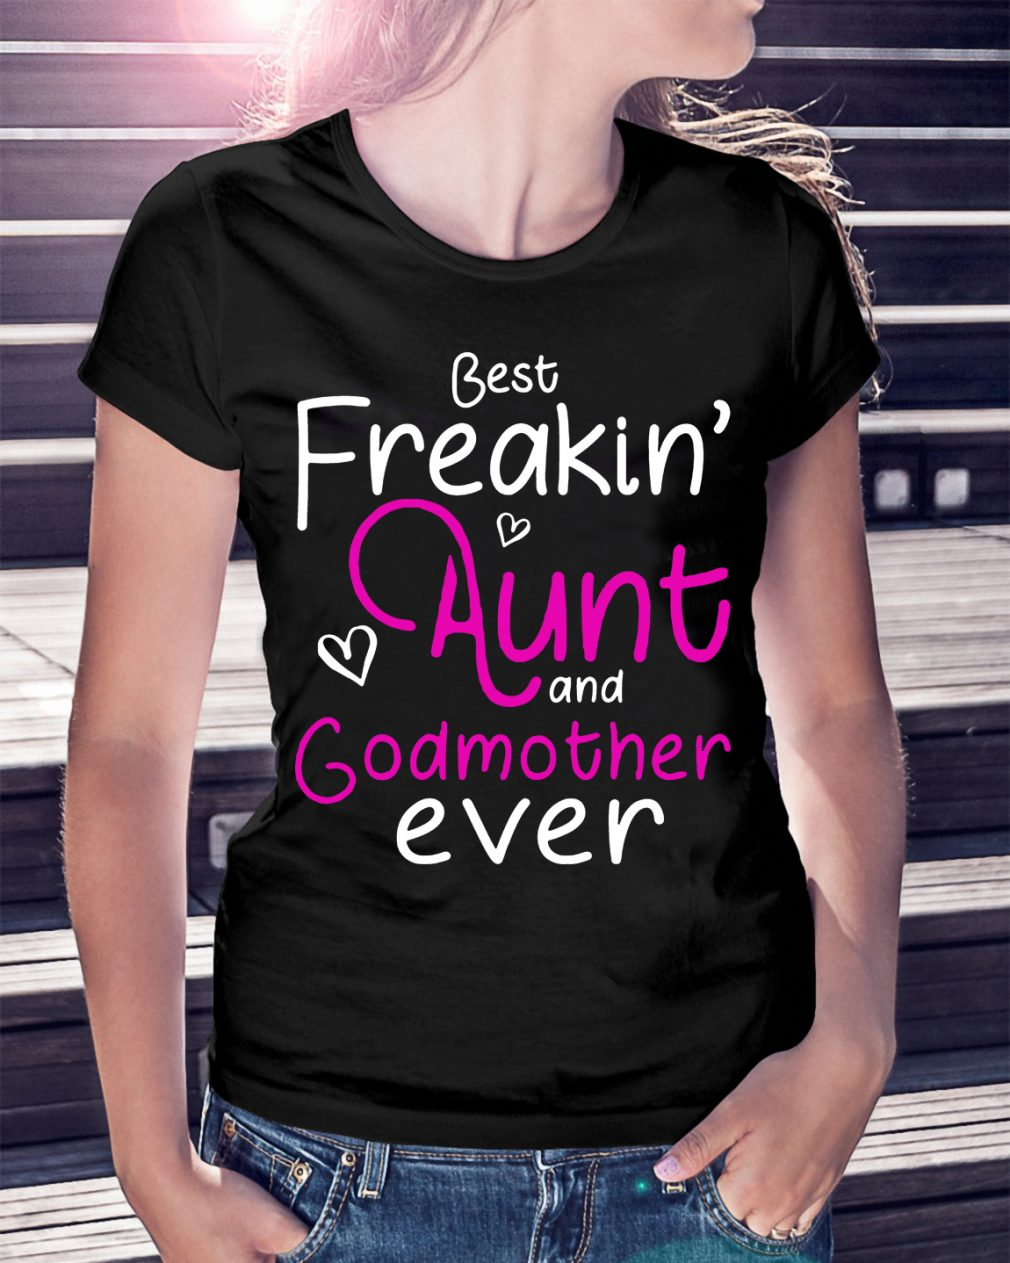 Best Freakin Aunt Godmother Ever Shirt